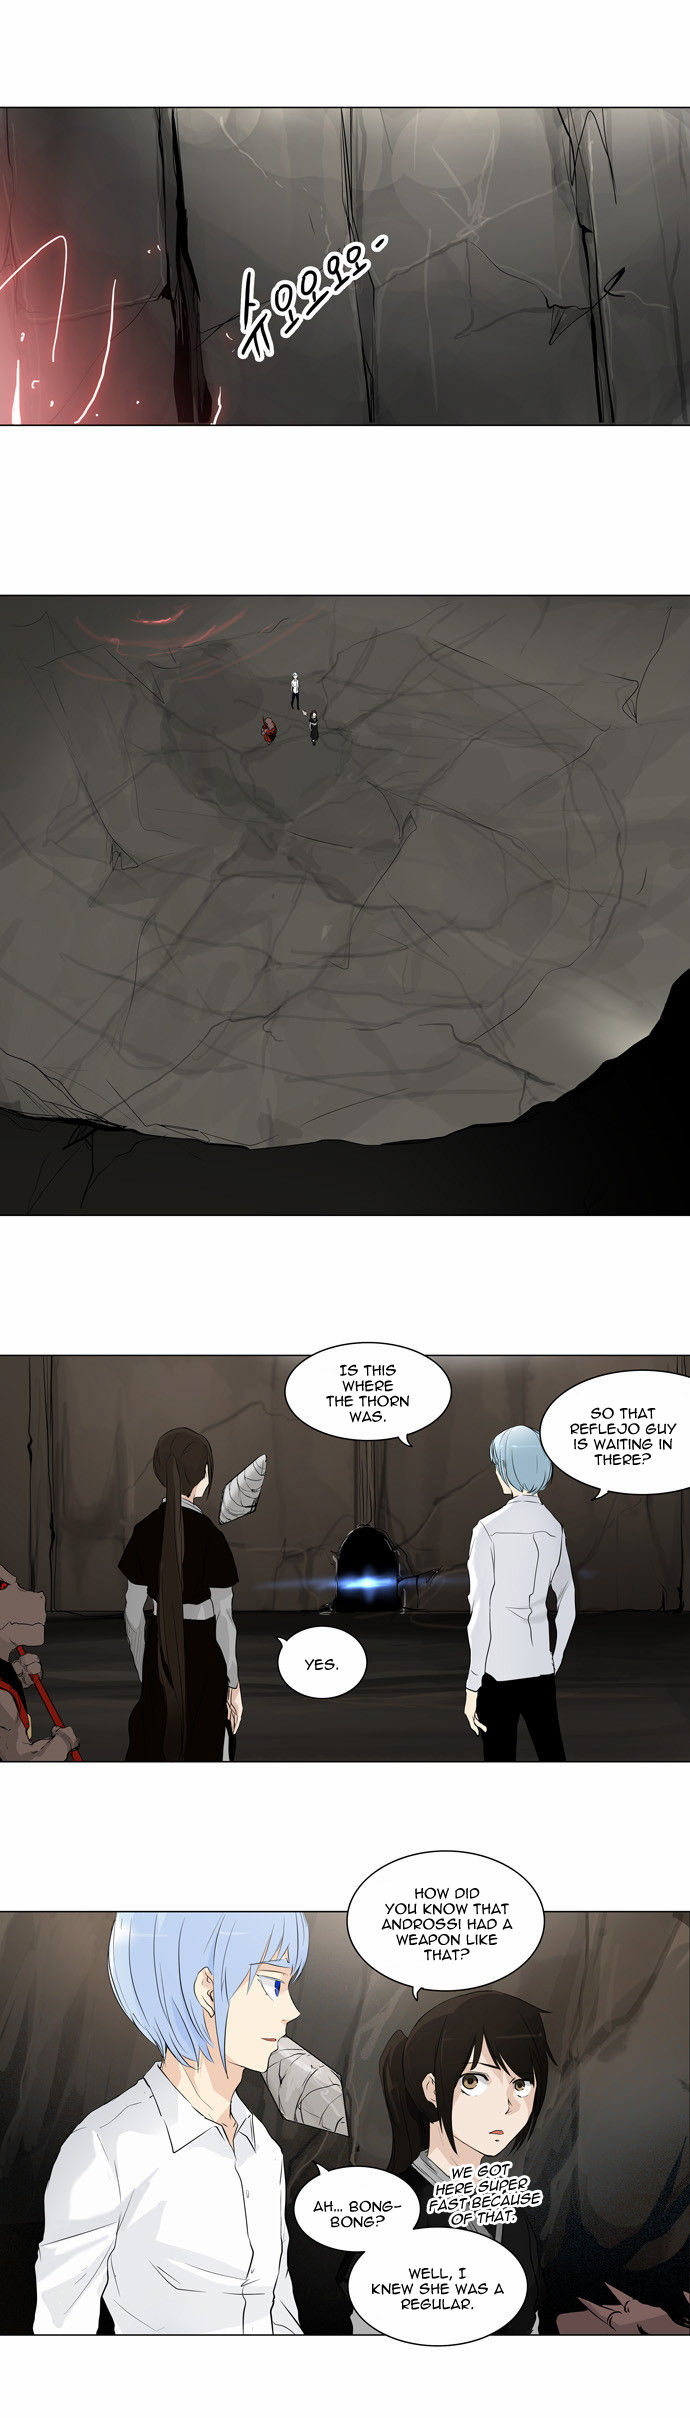 Tower of God 179 Page 1